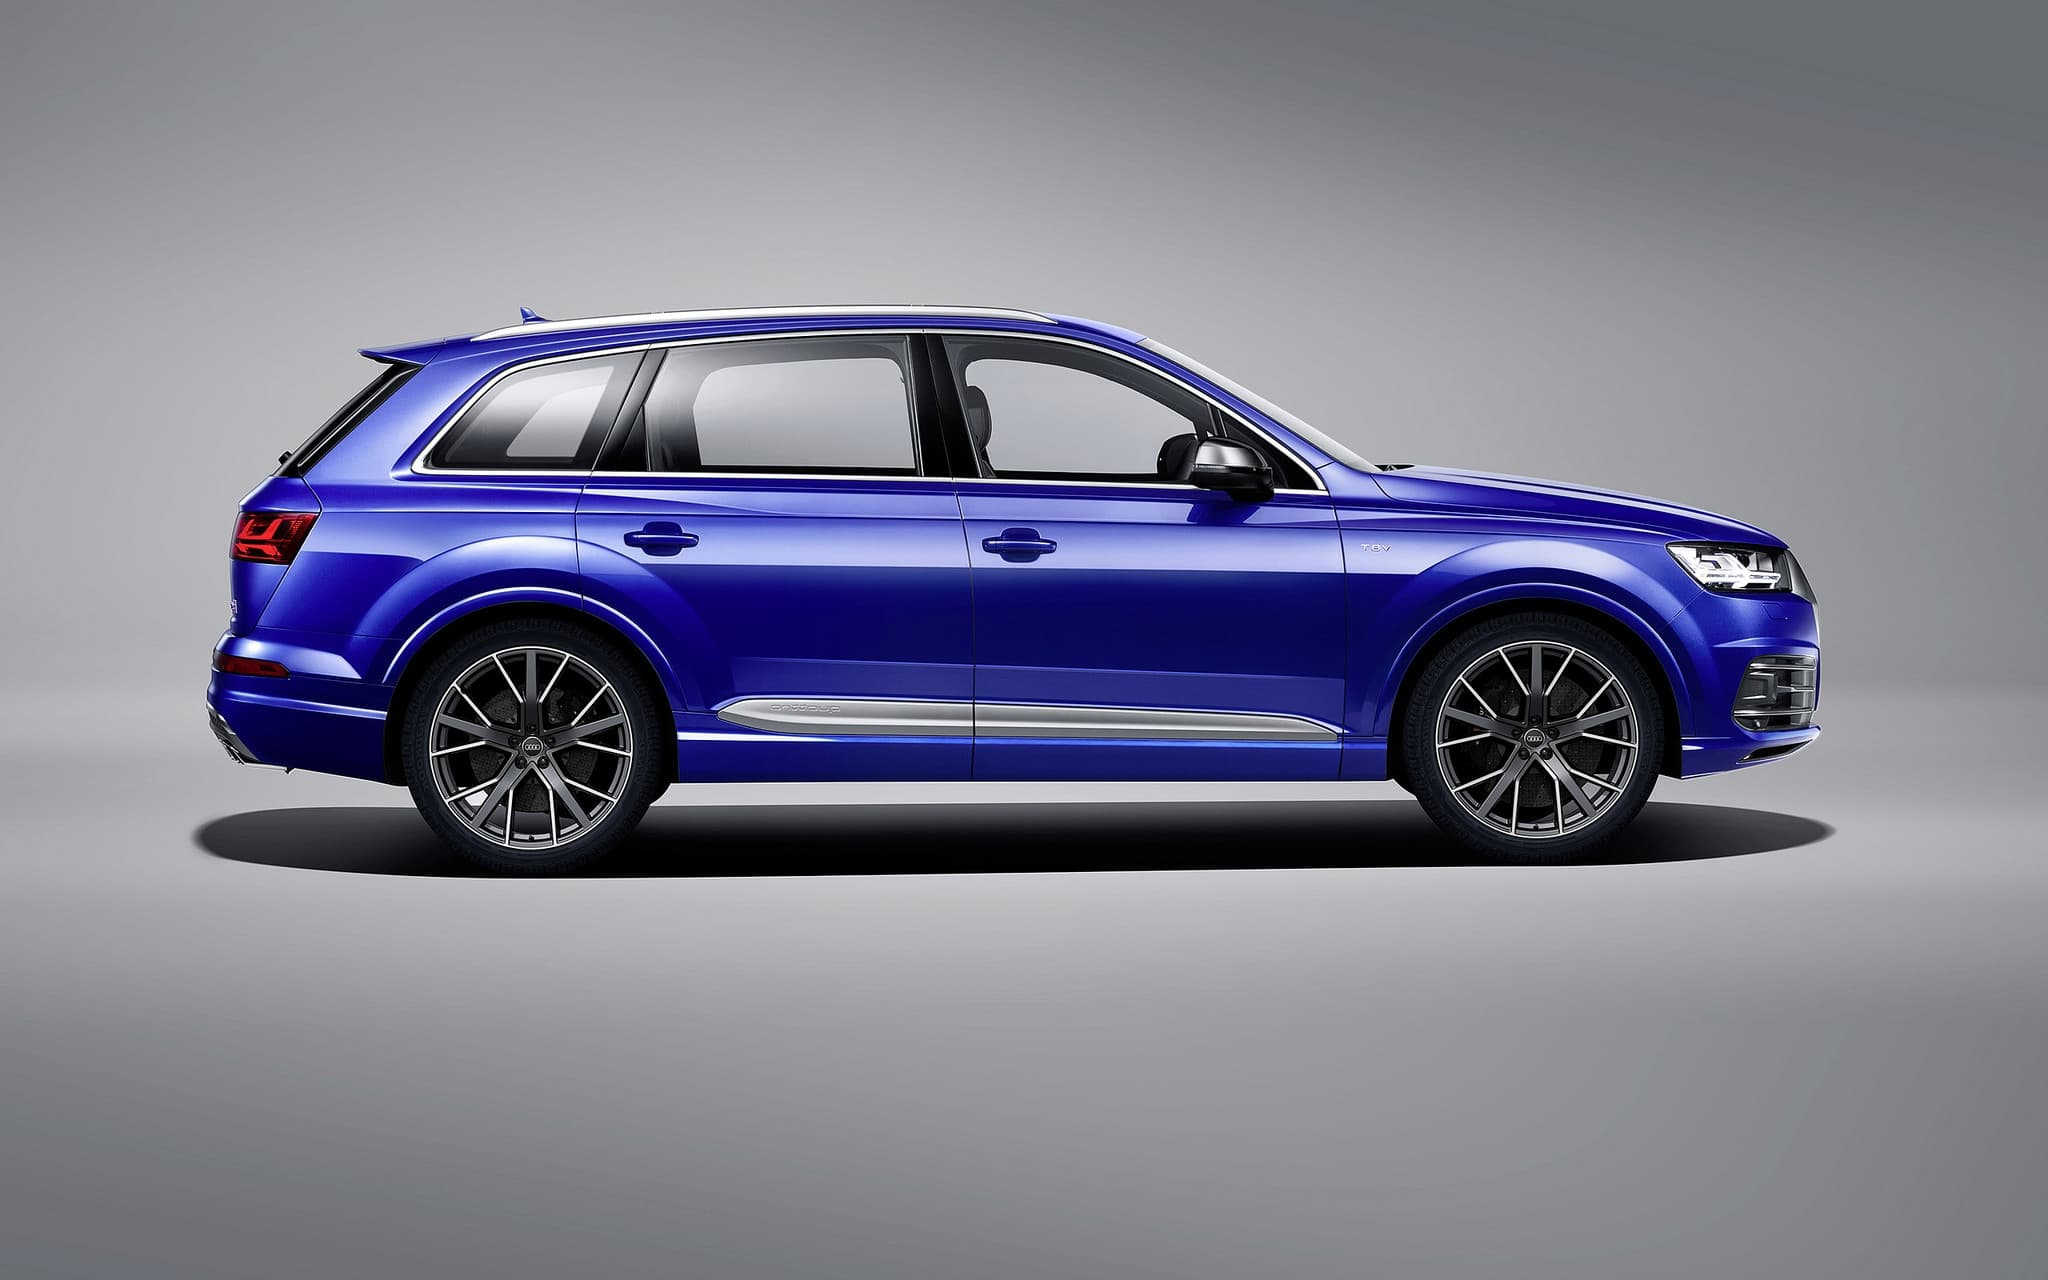 Audi Suv Models >> 2016 Audi SQ7 wallpapers HD High Quality